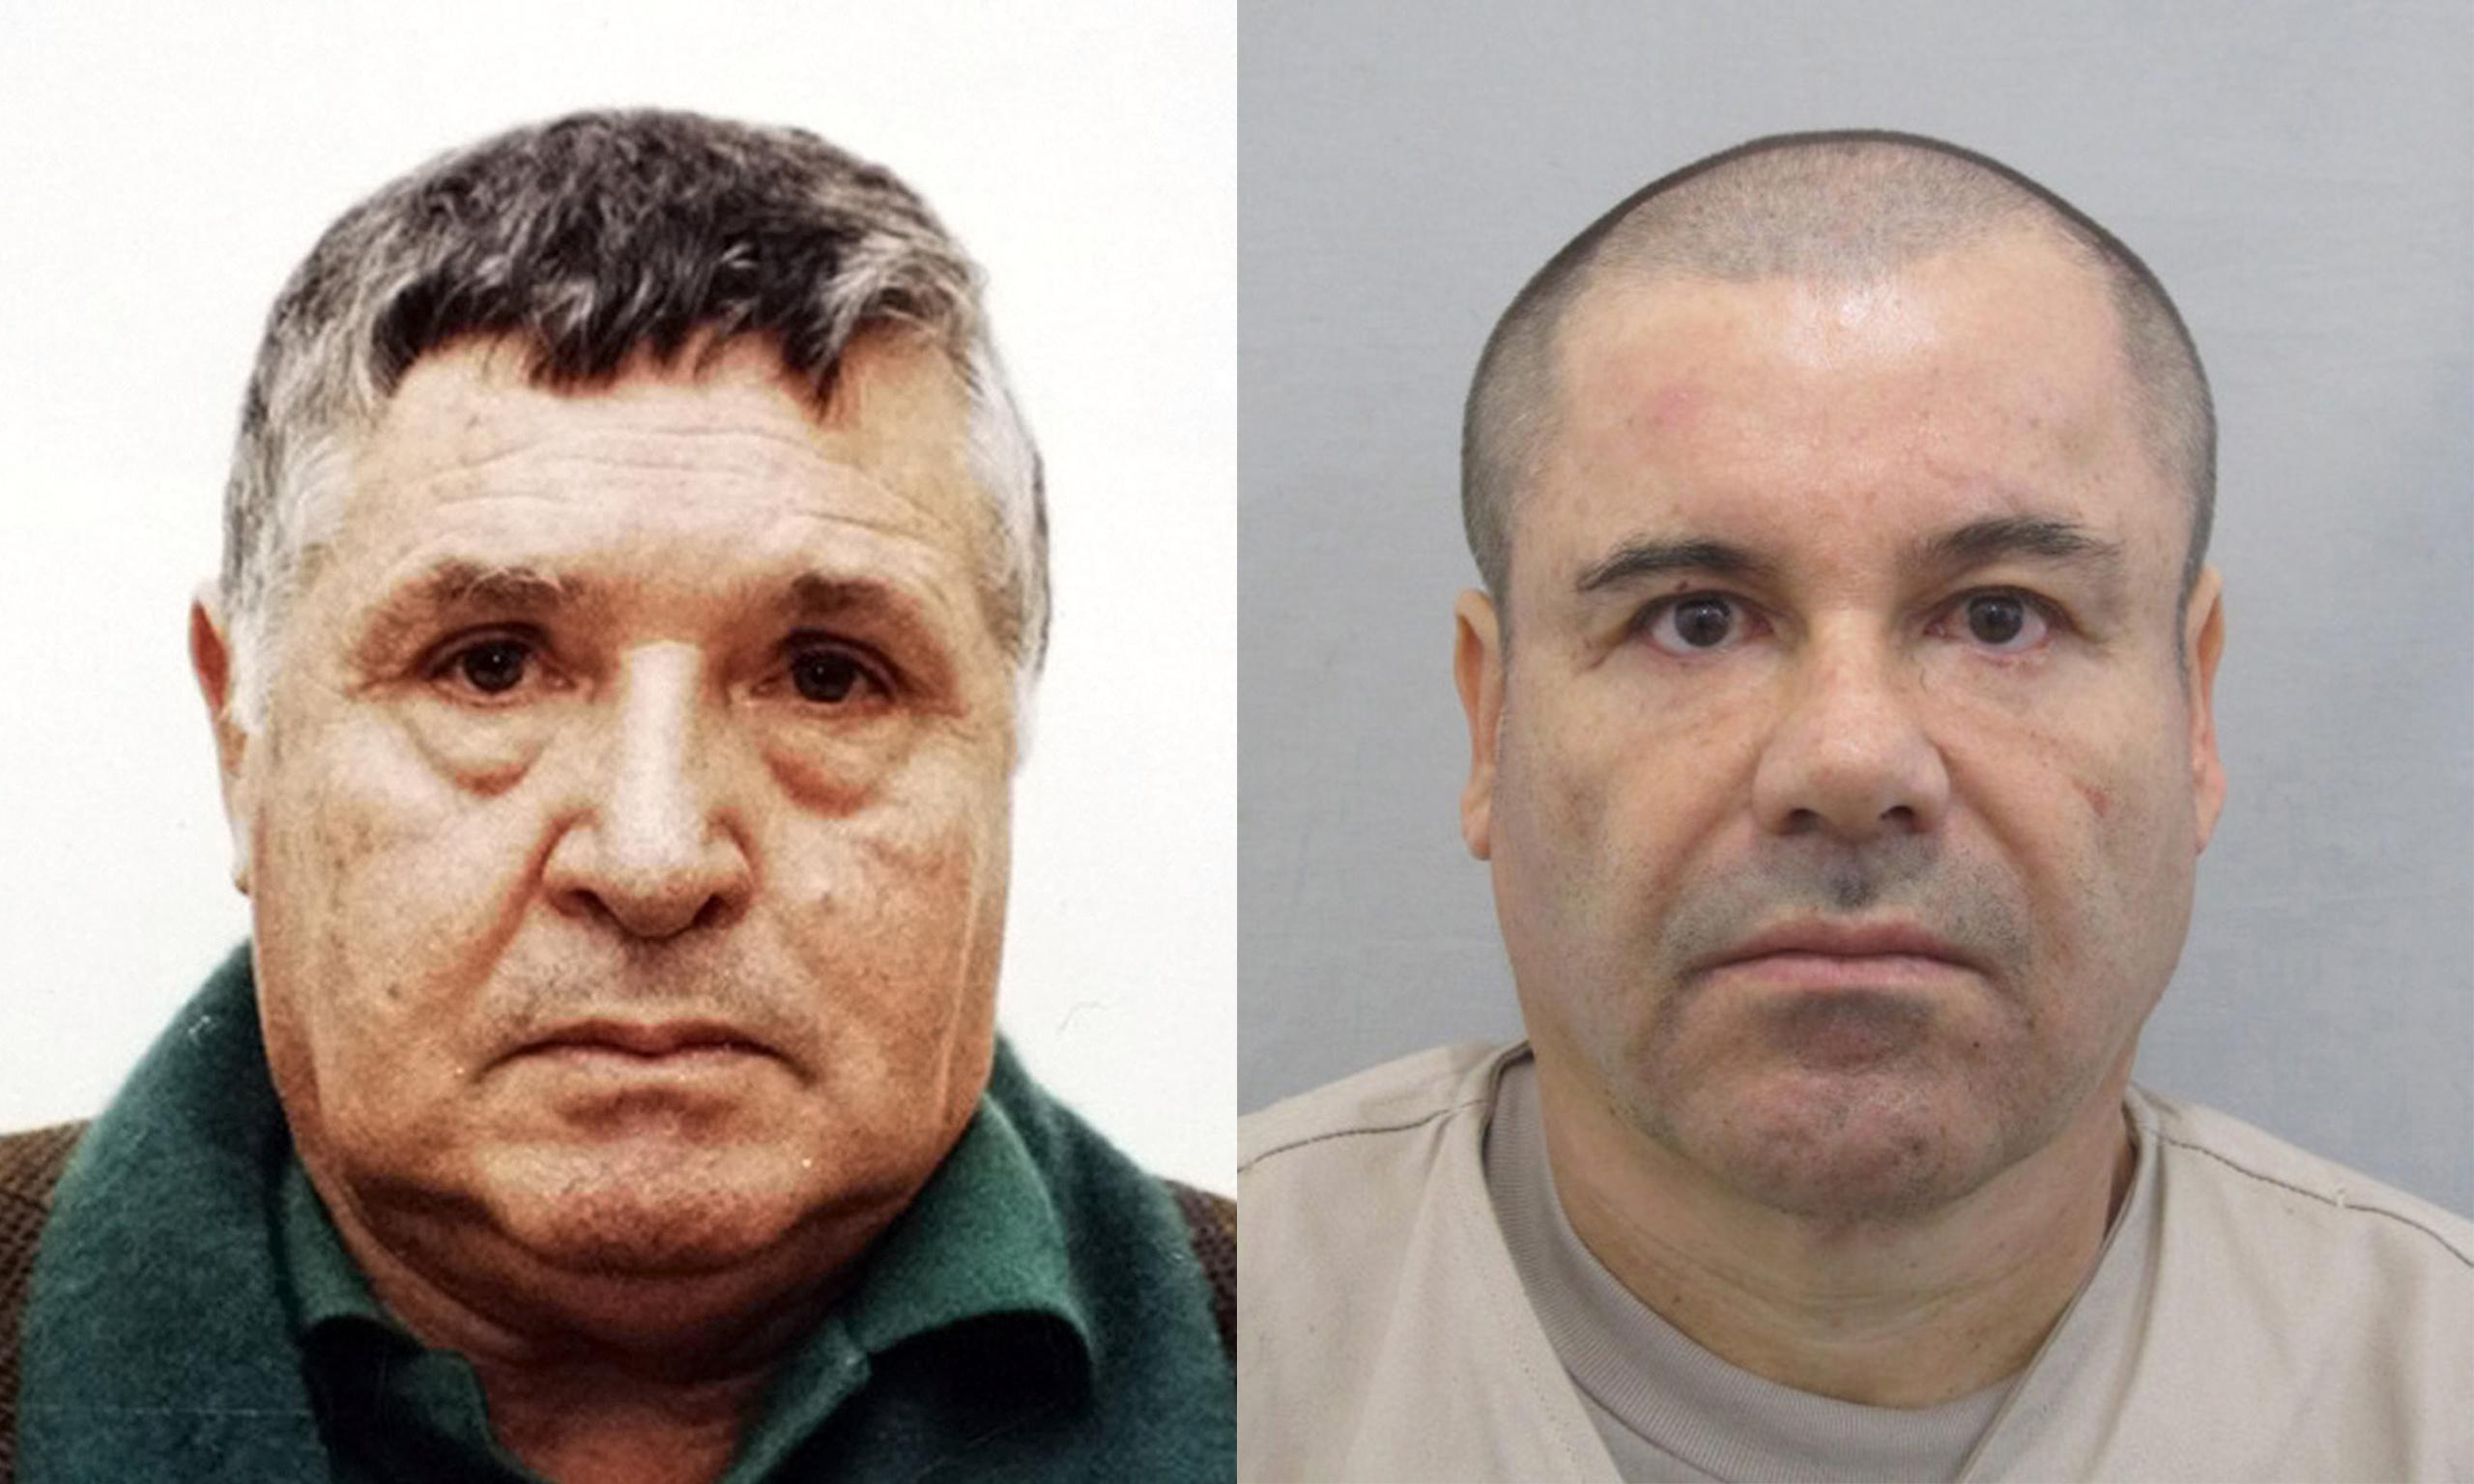 Tale of two drugs lords: from Cosa Nostra to Guzmán – it's strictly business